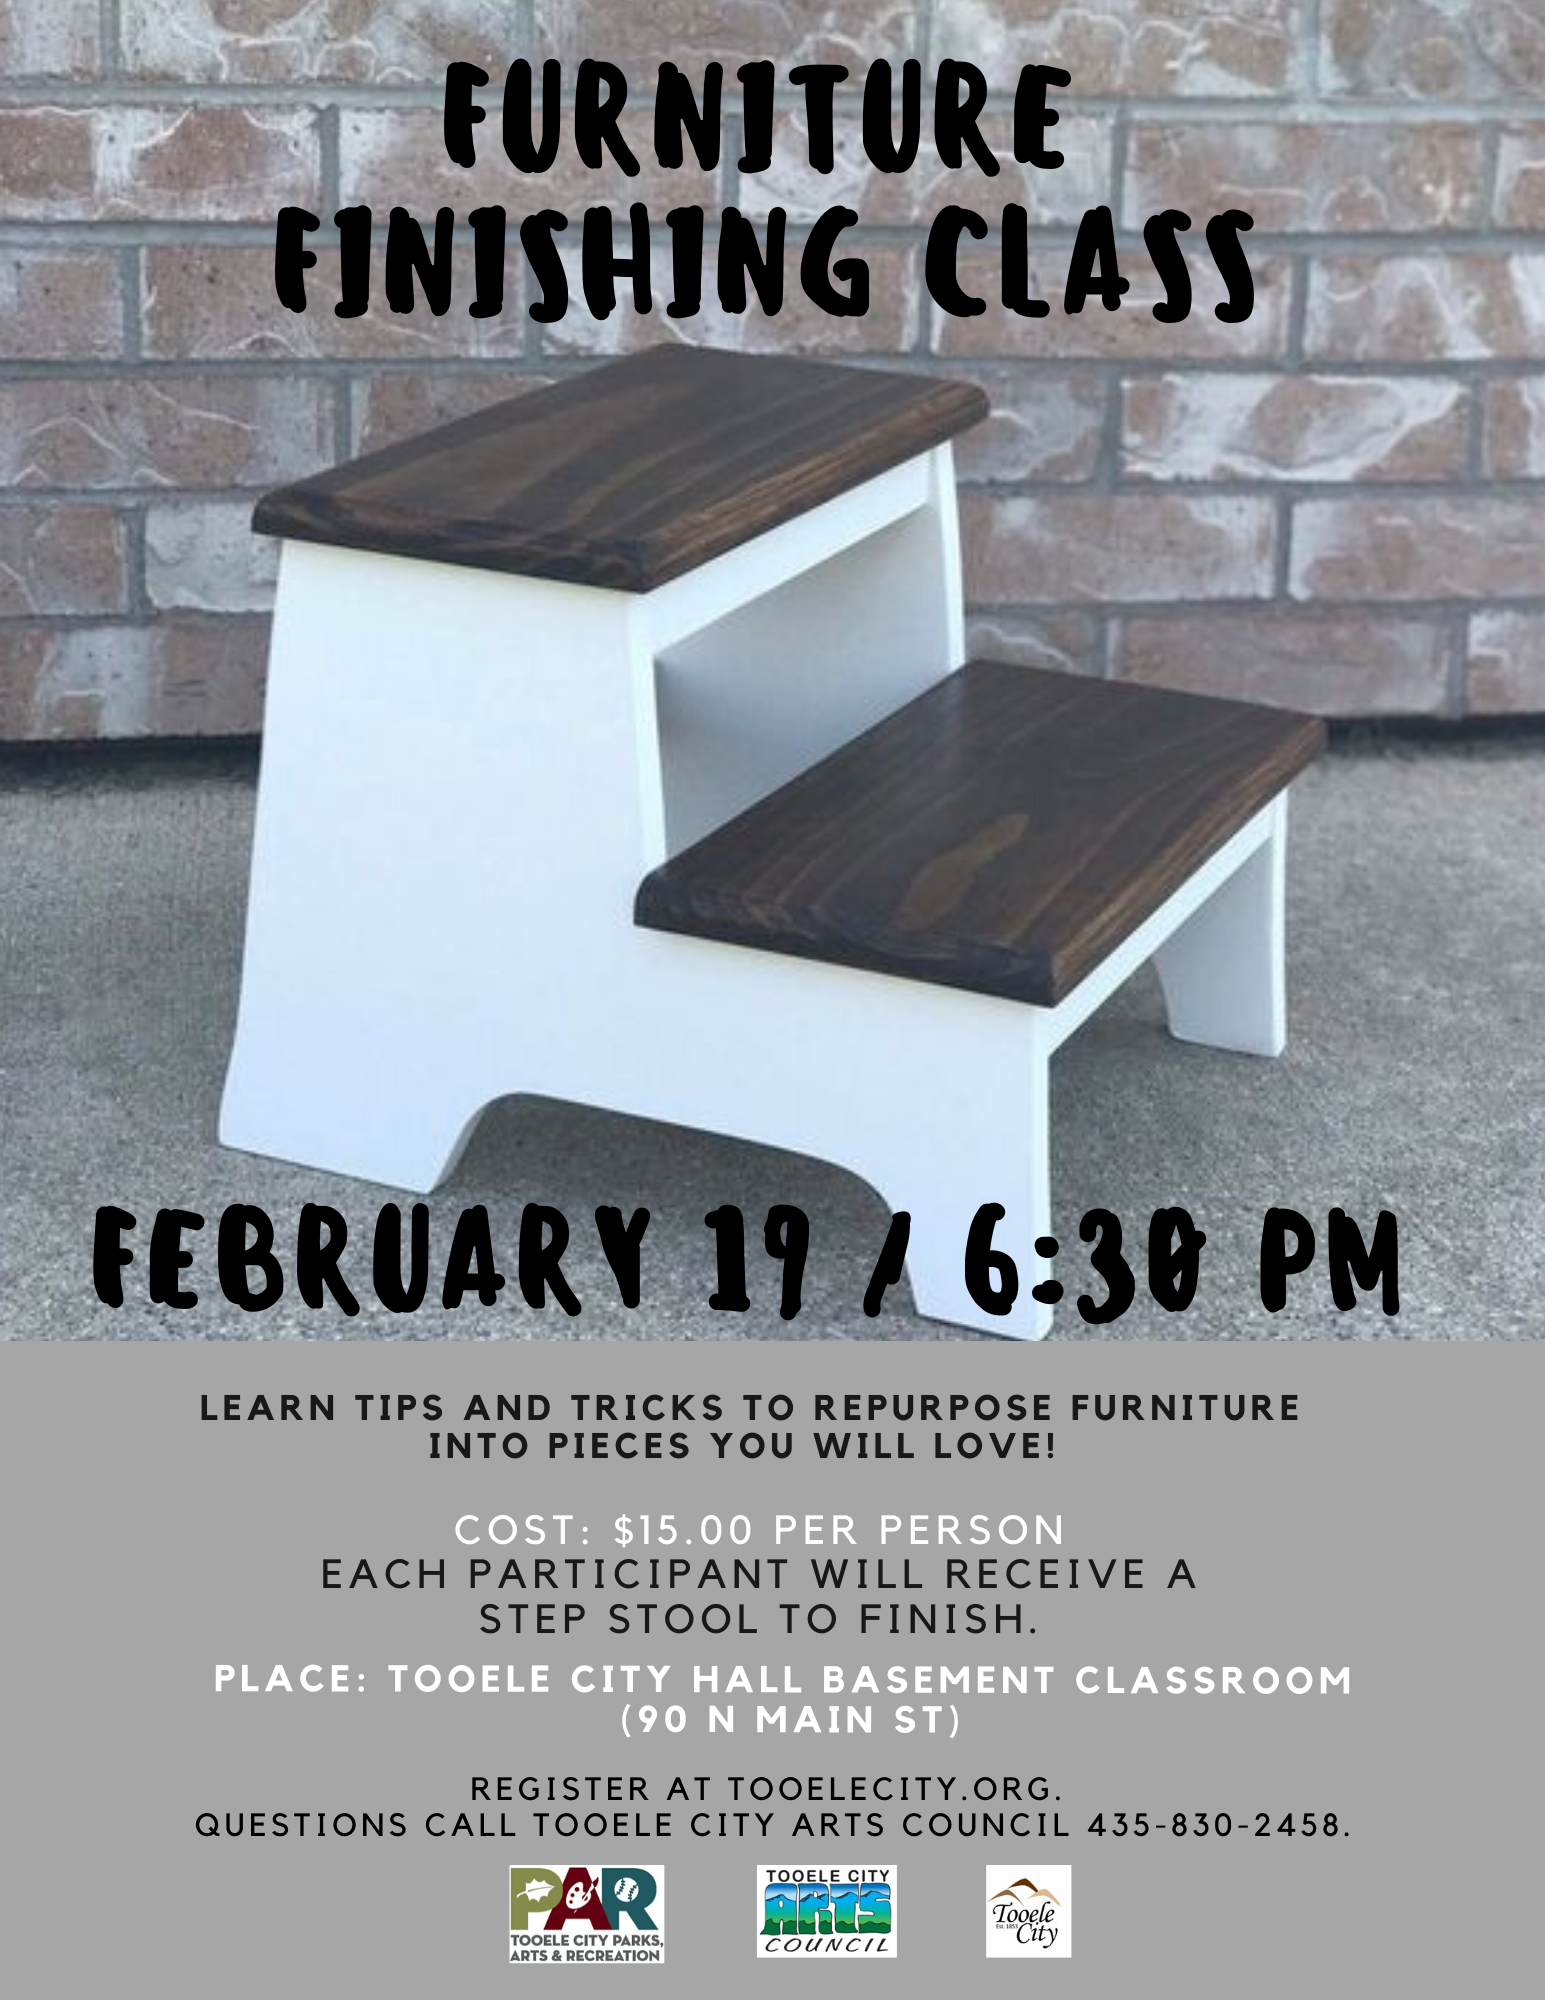 Furniture Finishing Class @ Tooele City Hall (Basement Classroom) | Tooele | Utah | United States